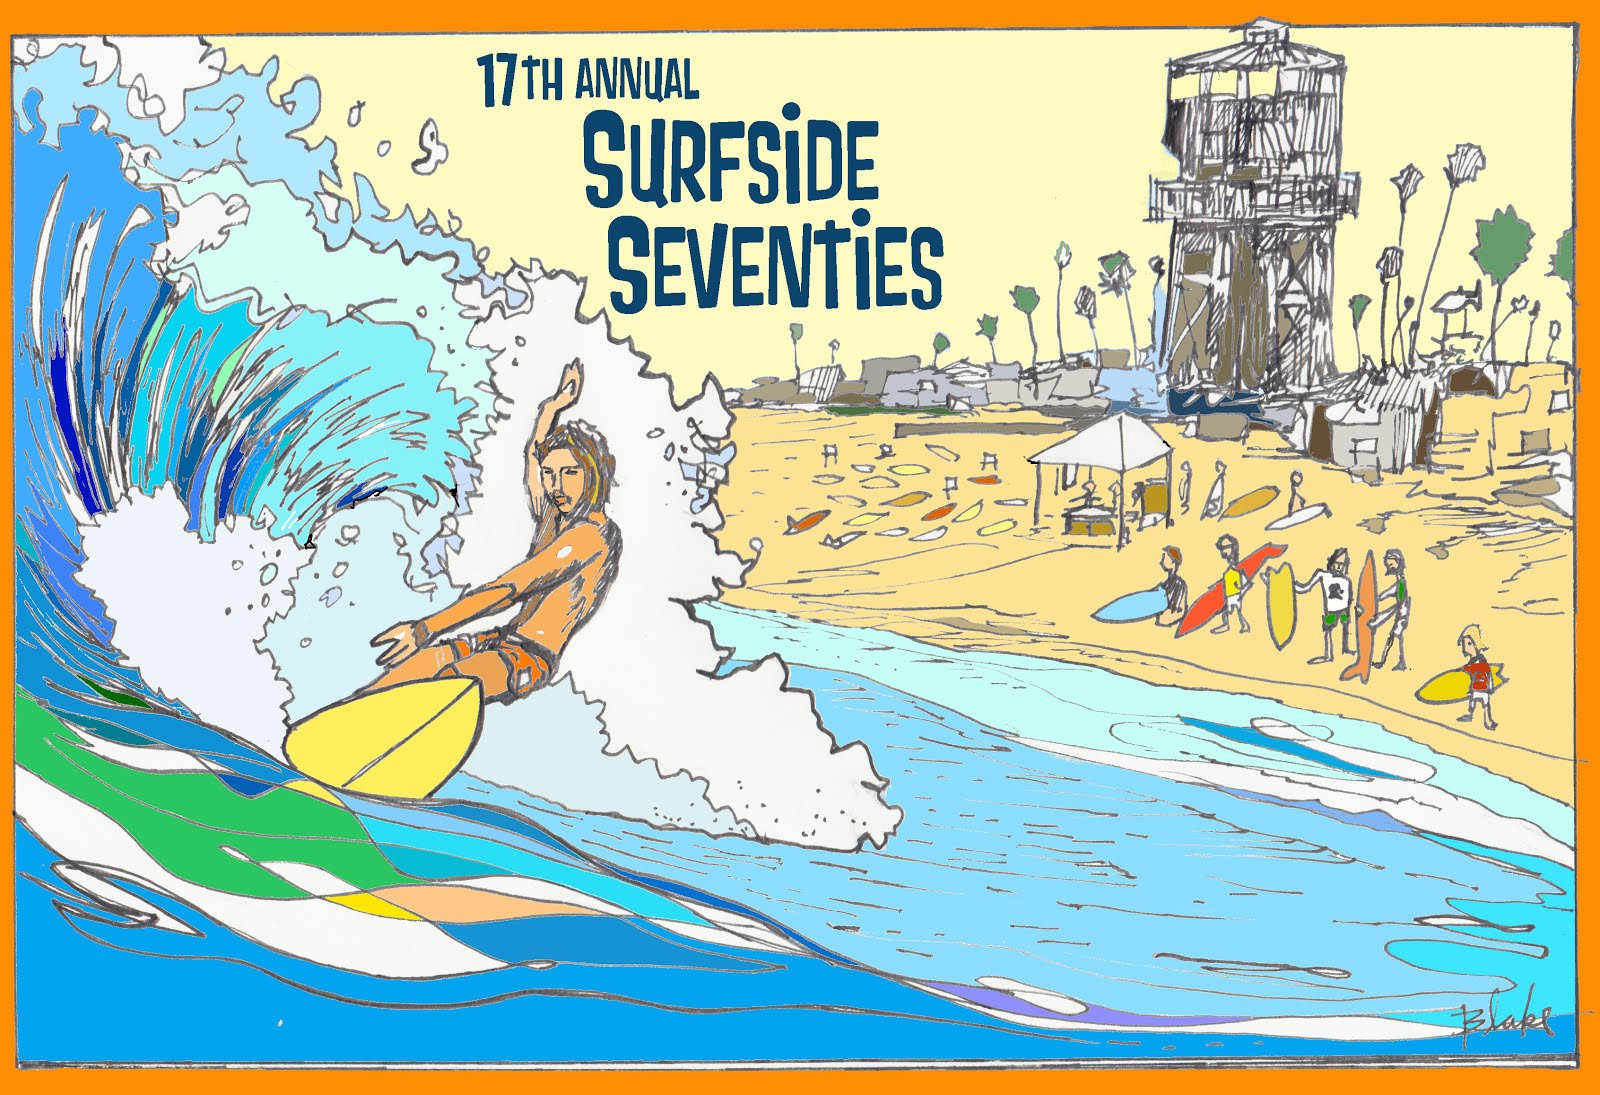 2015 17th annual Surfside Seventies